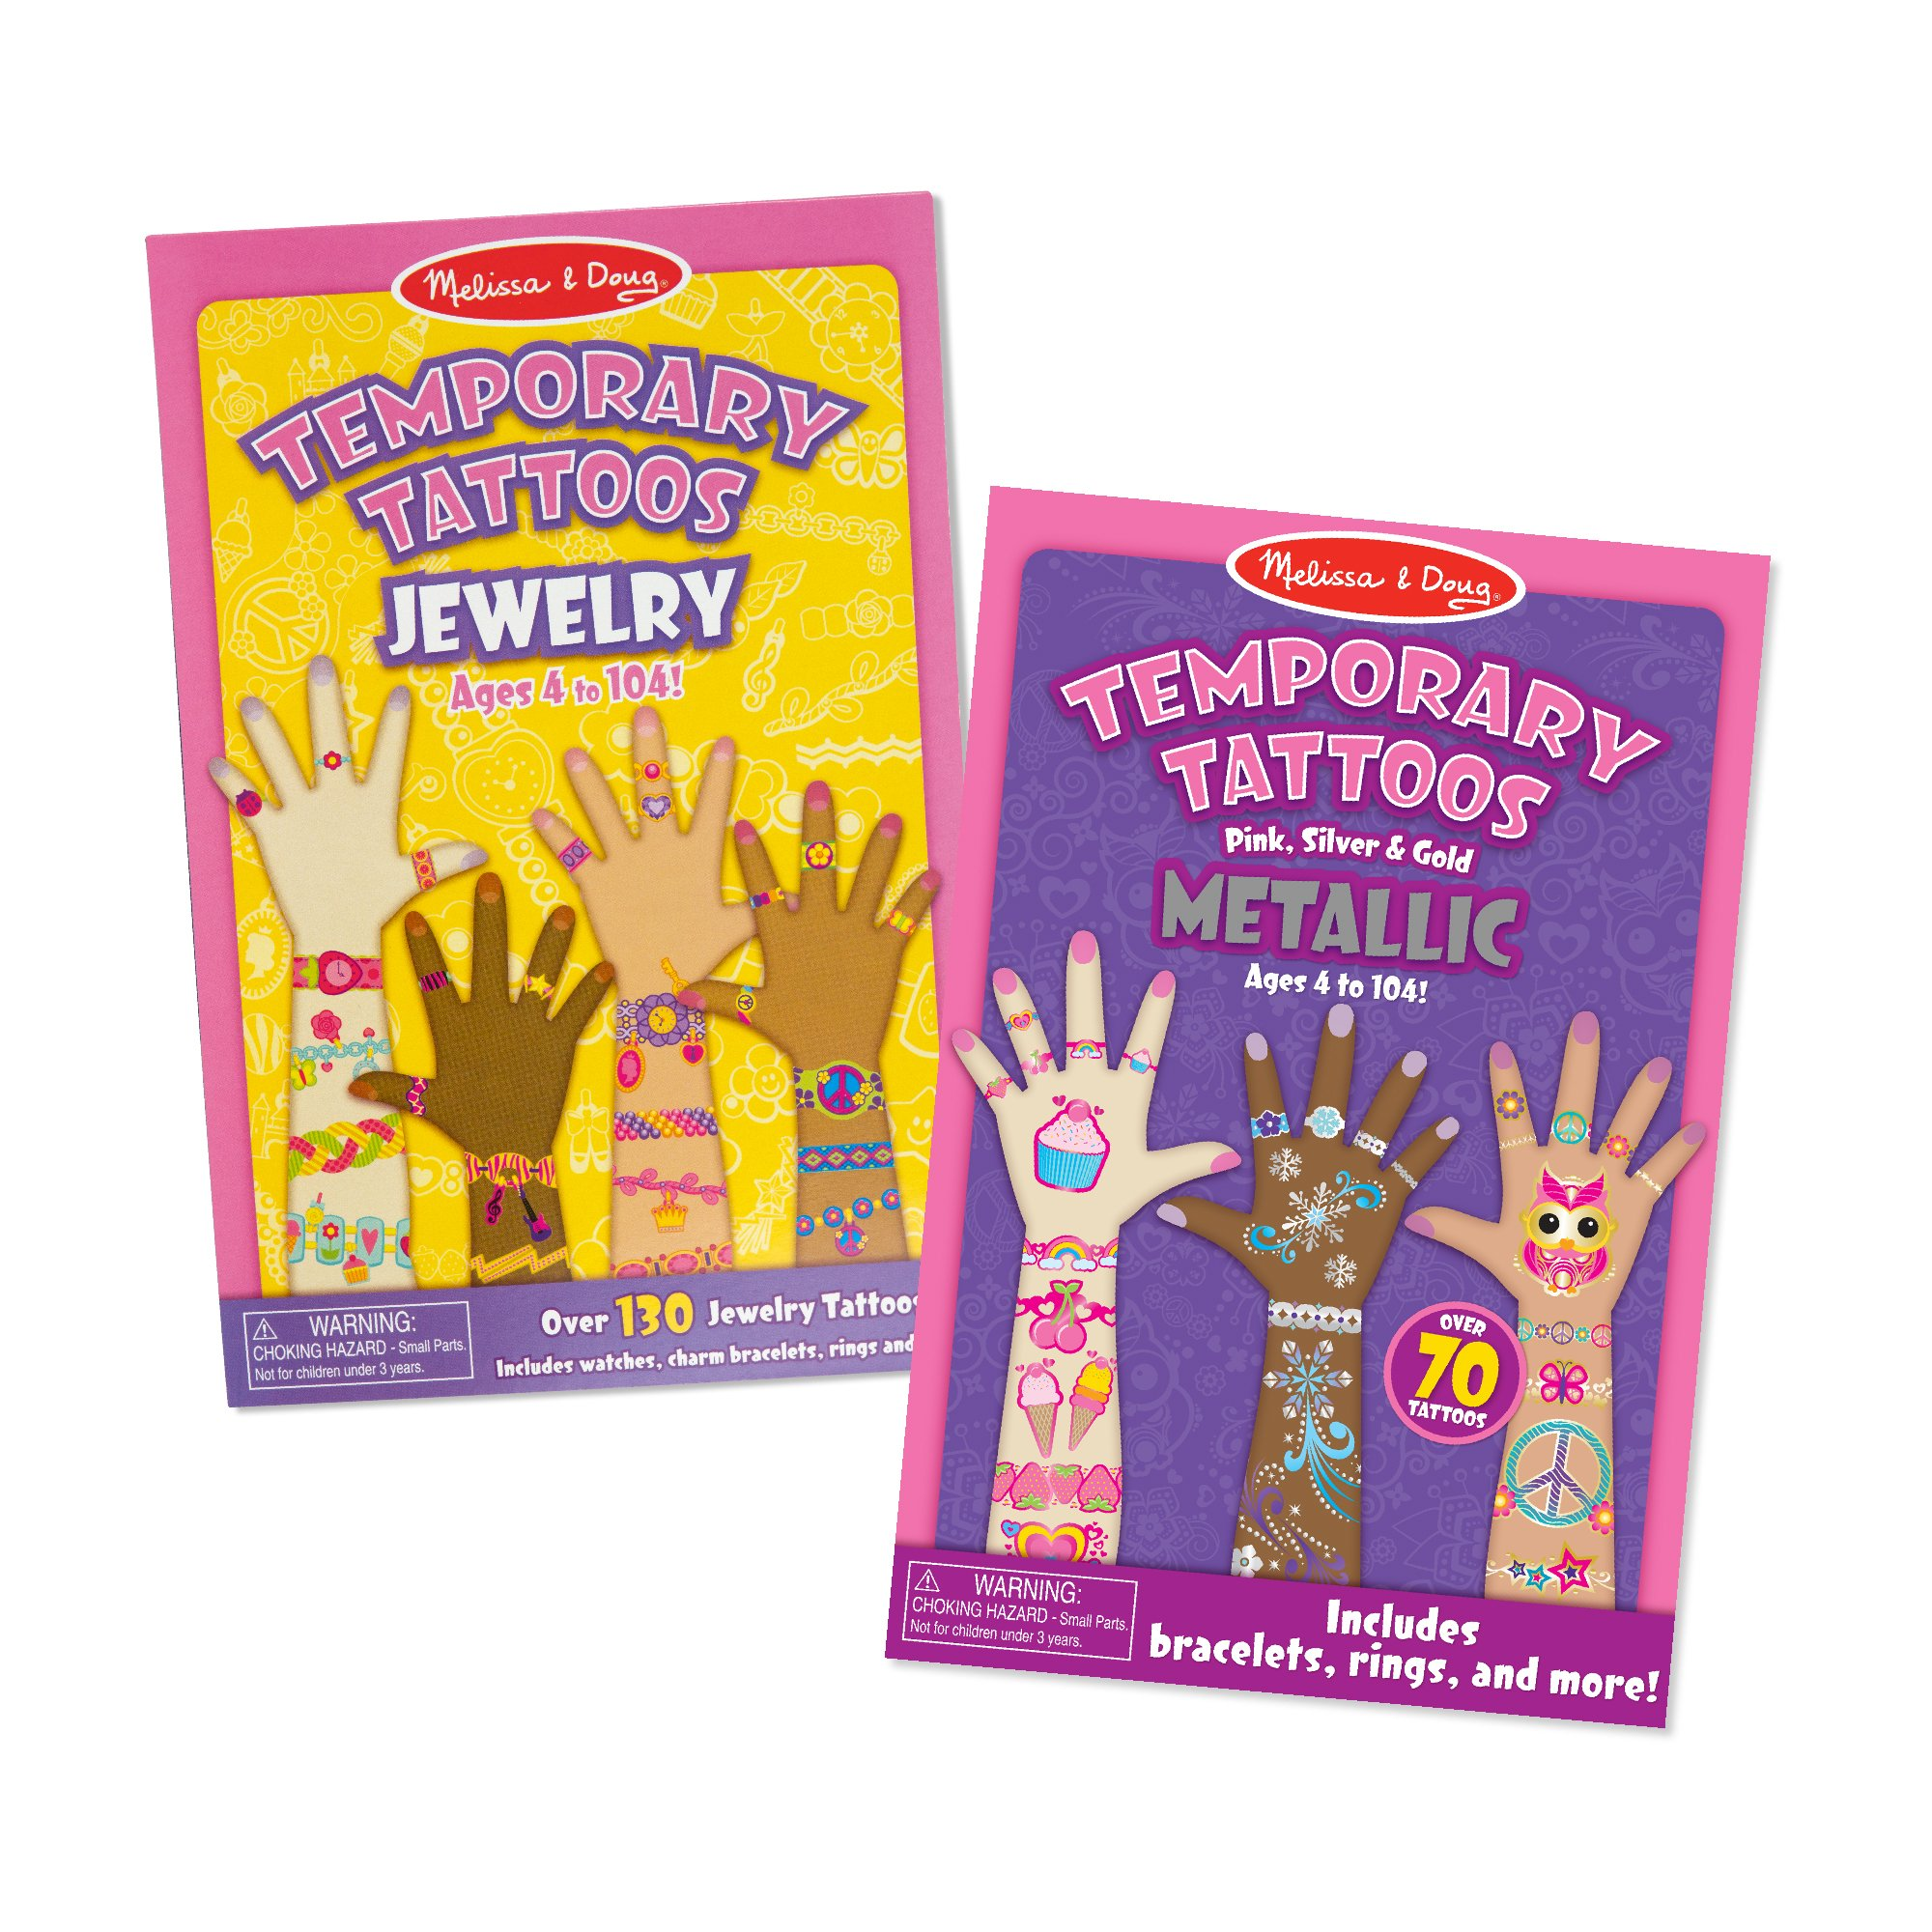 Melissa & Doug Press-On Temporary Tattoos for Kids (2 Pack – Jewelry, Metallic, Great Gift for Girls and Boys - Best for 4, 5, 6, 7, 8 Year Olds and Up)